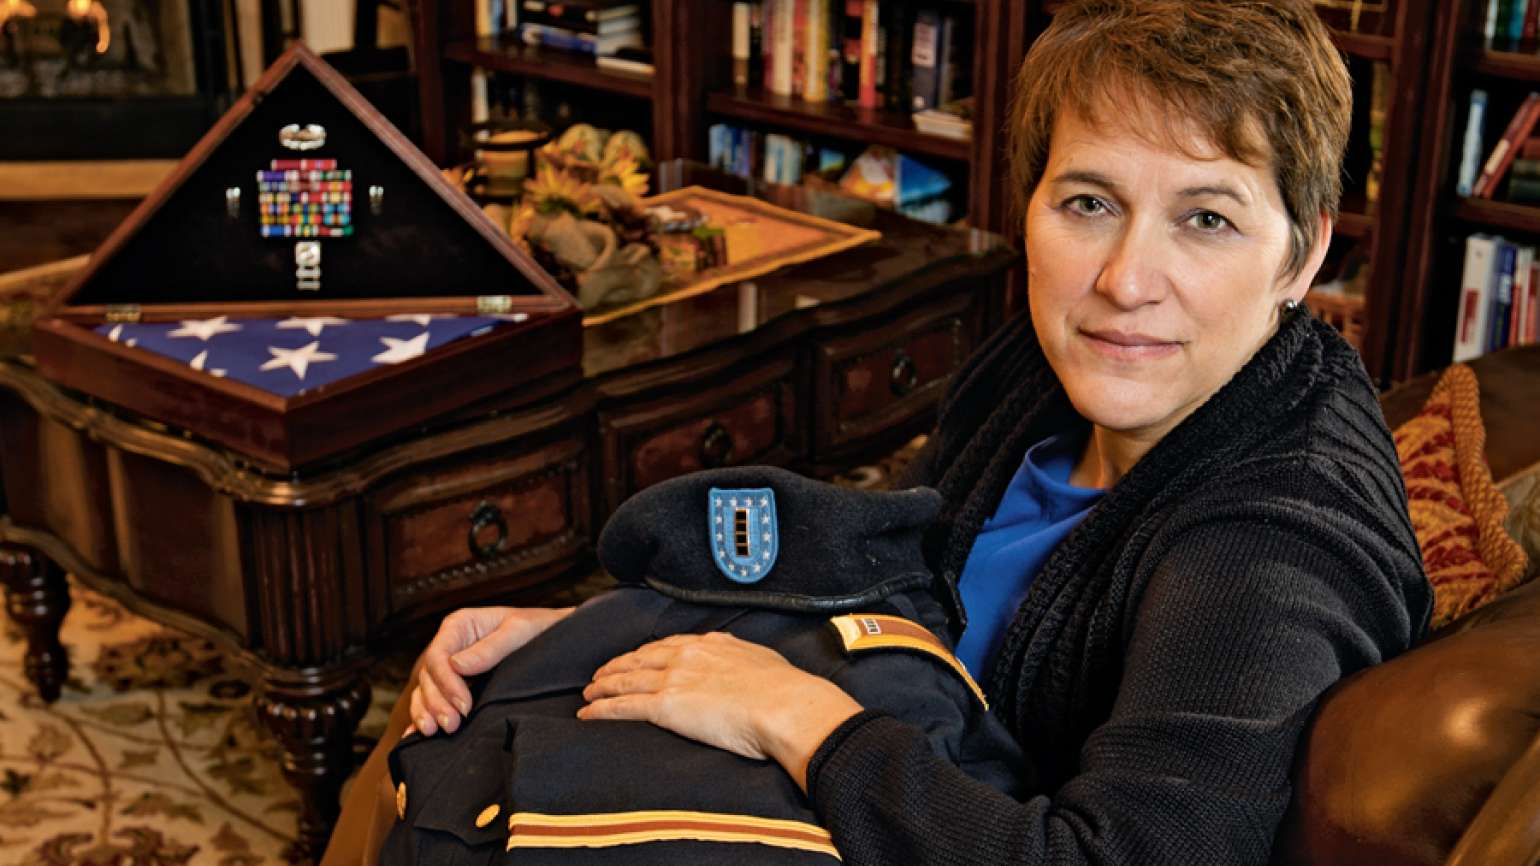 Donna Engeman's now an administrator with the Army's Survivor Outreach Services.